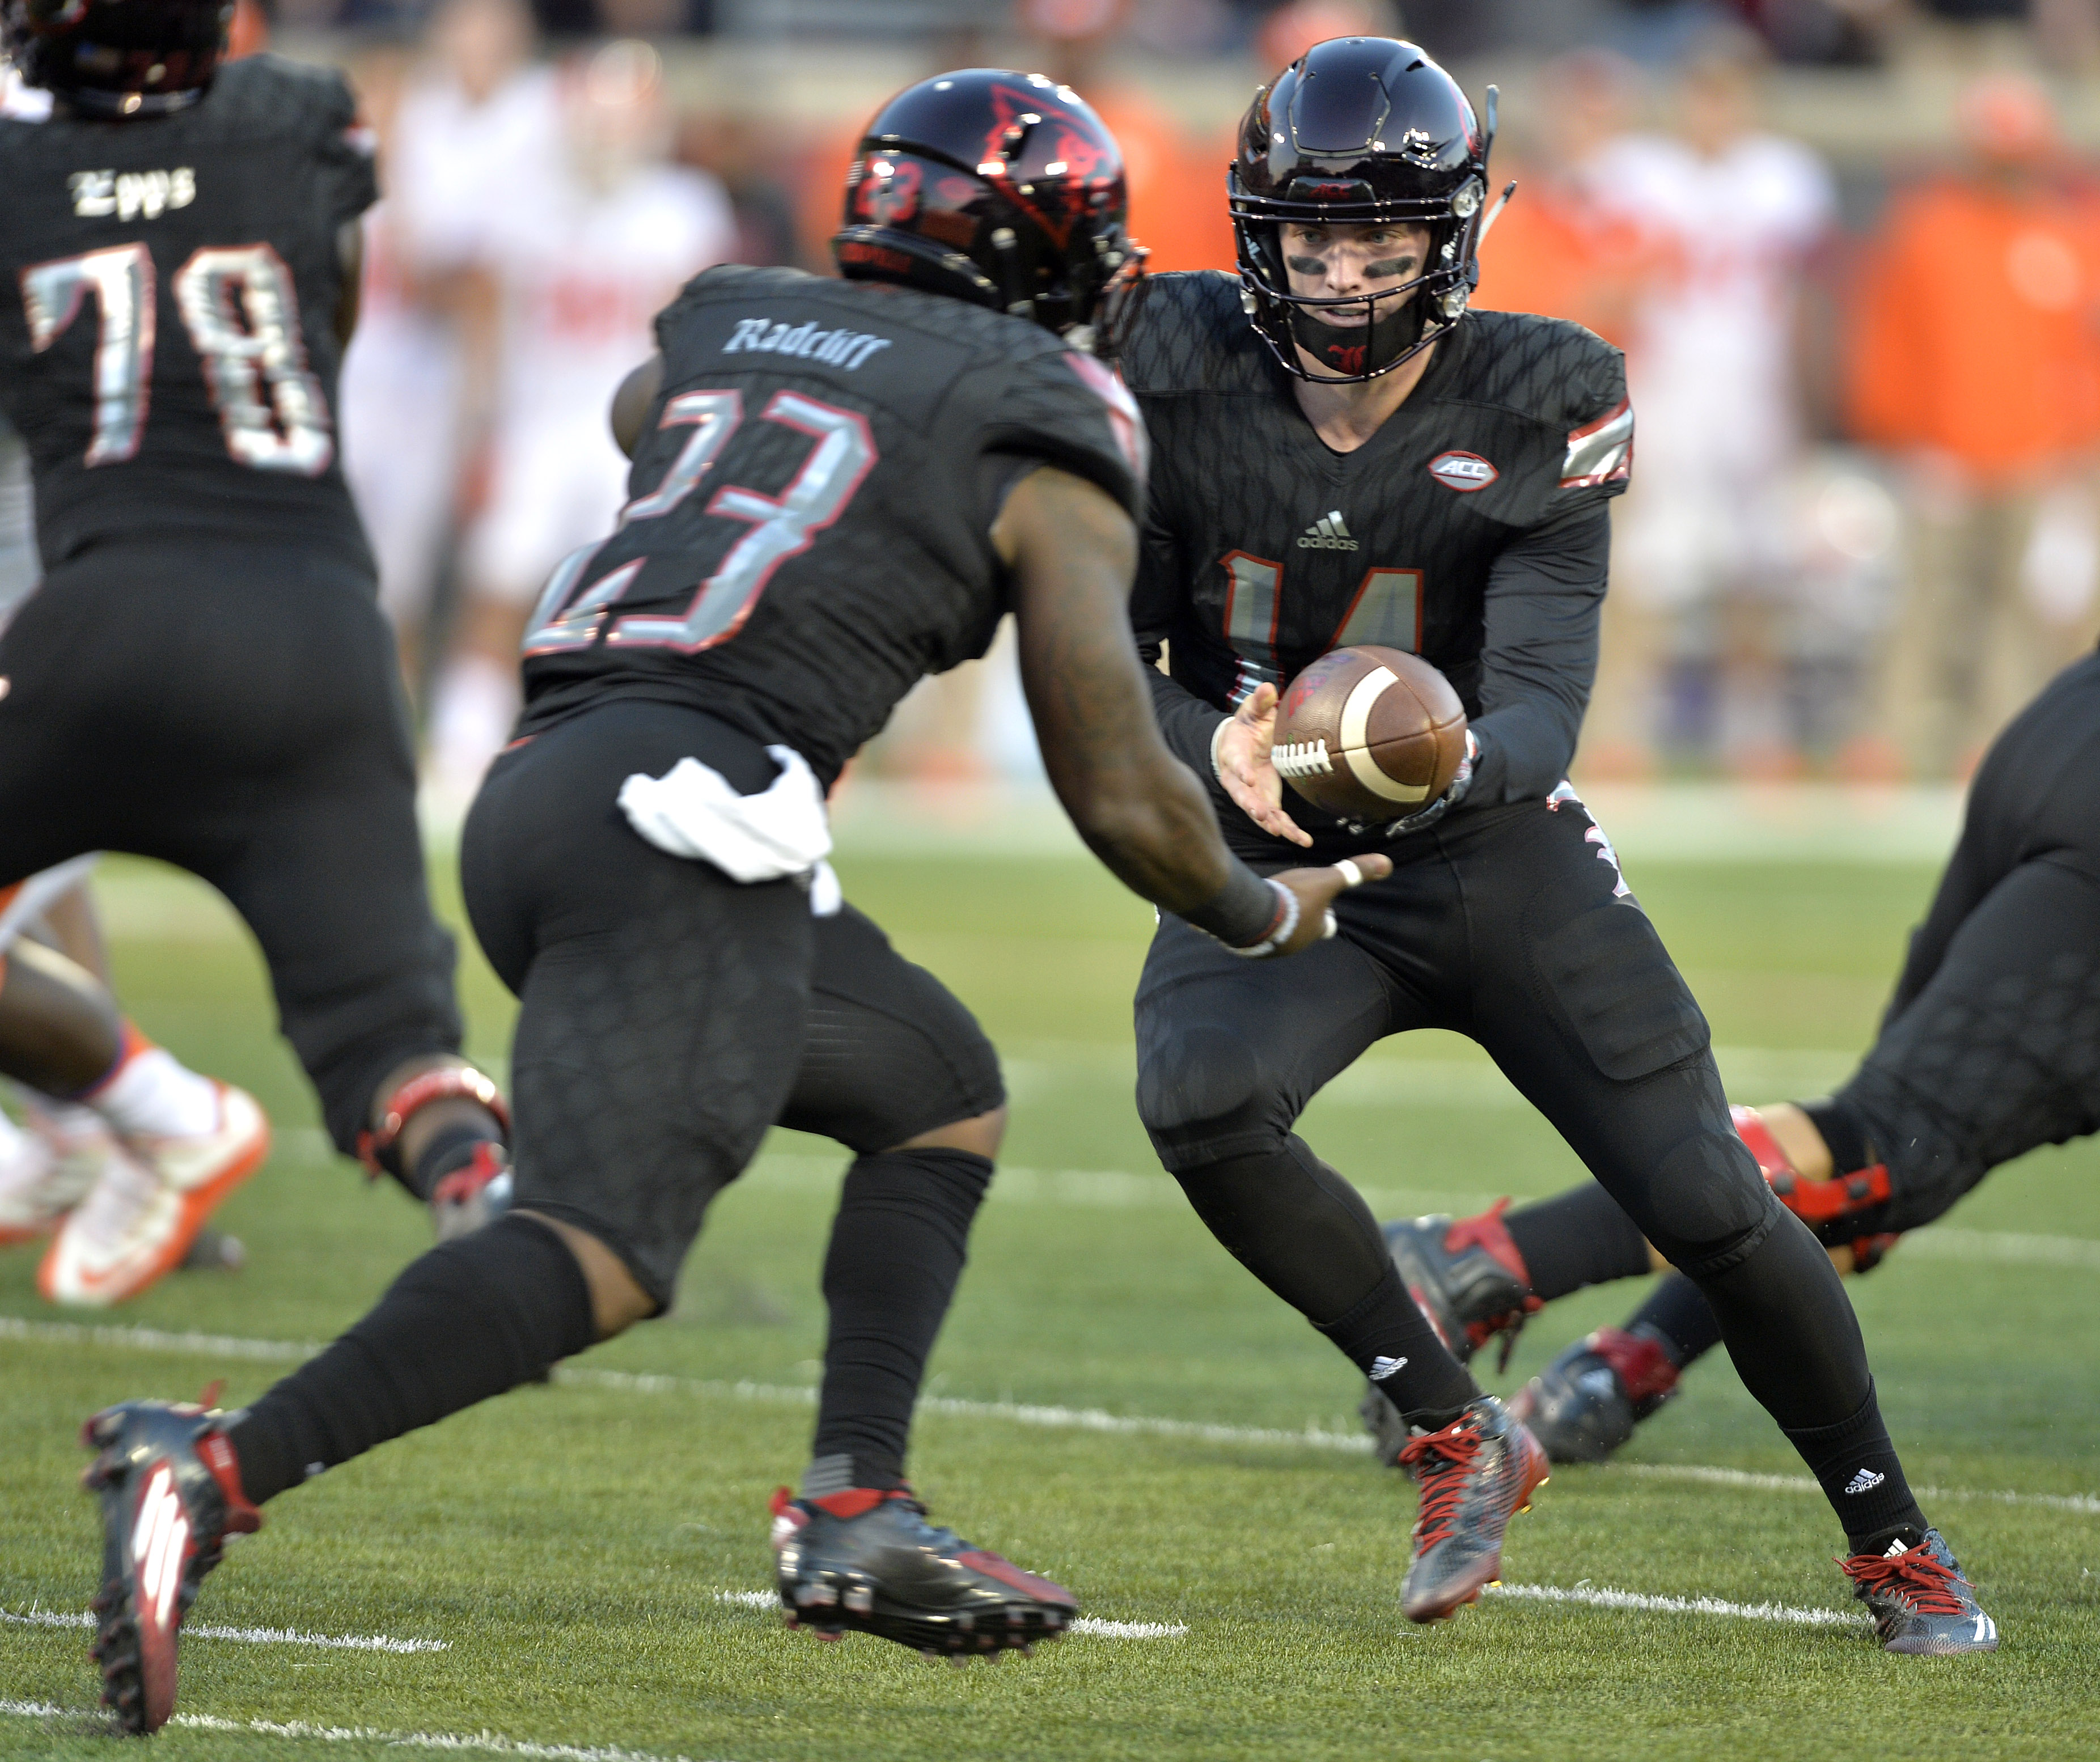 Louisville quarterback Kyle Bolin, right, hands the ball off to Brandon Radcliff during the first half of an NCAA college football game against Clemson in Louisville, Ky., Thursday, Sept. 17, 2015. (AP Photo/Timothy D. Easley)